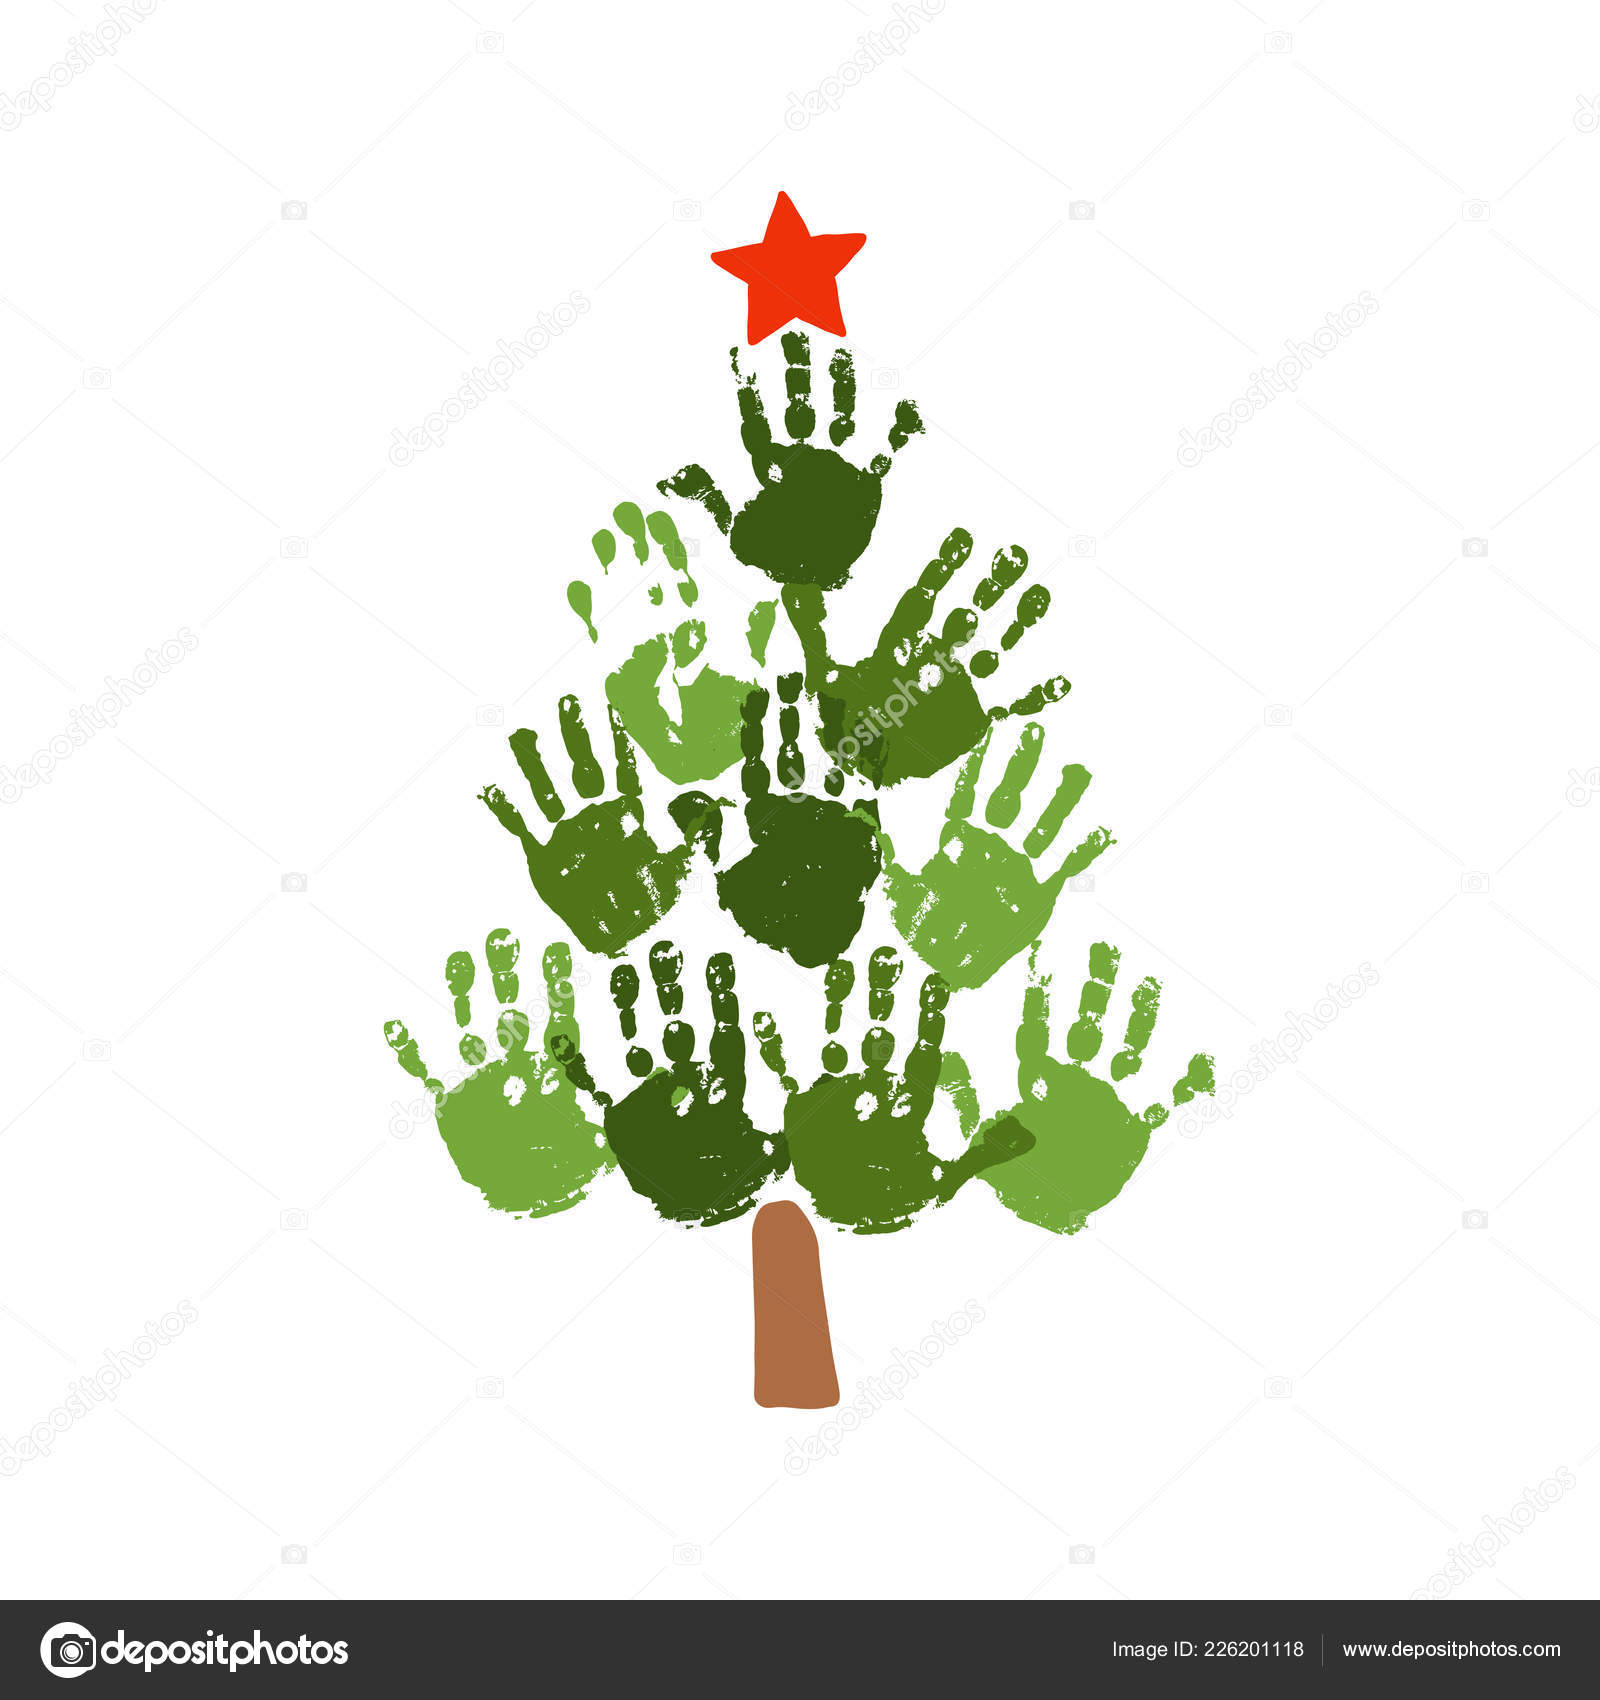 Christmas Tree Of Handprints With Red Star Watercolor Acrylic Kids Christmas Art Children Christmas Crafts Family Christmas Card Design Vector Eps 10 Illustration Isolated On White Vector Image By C